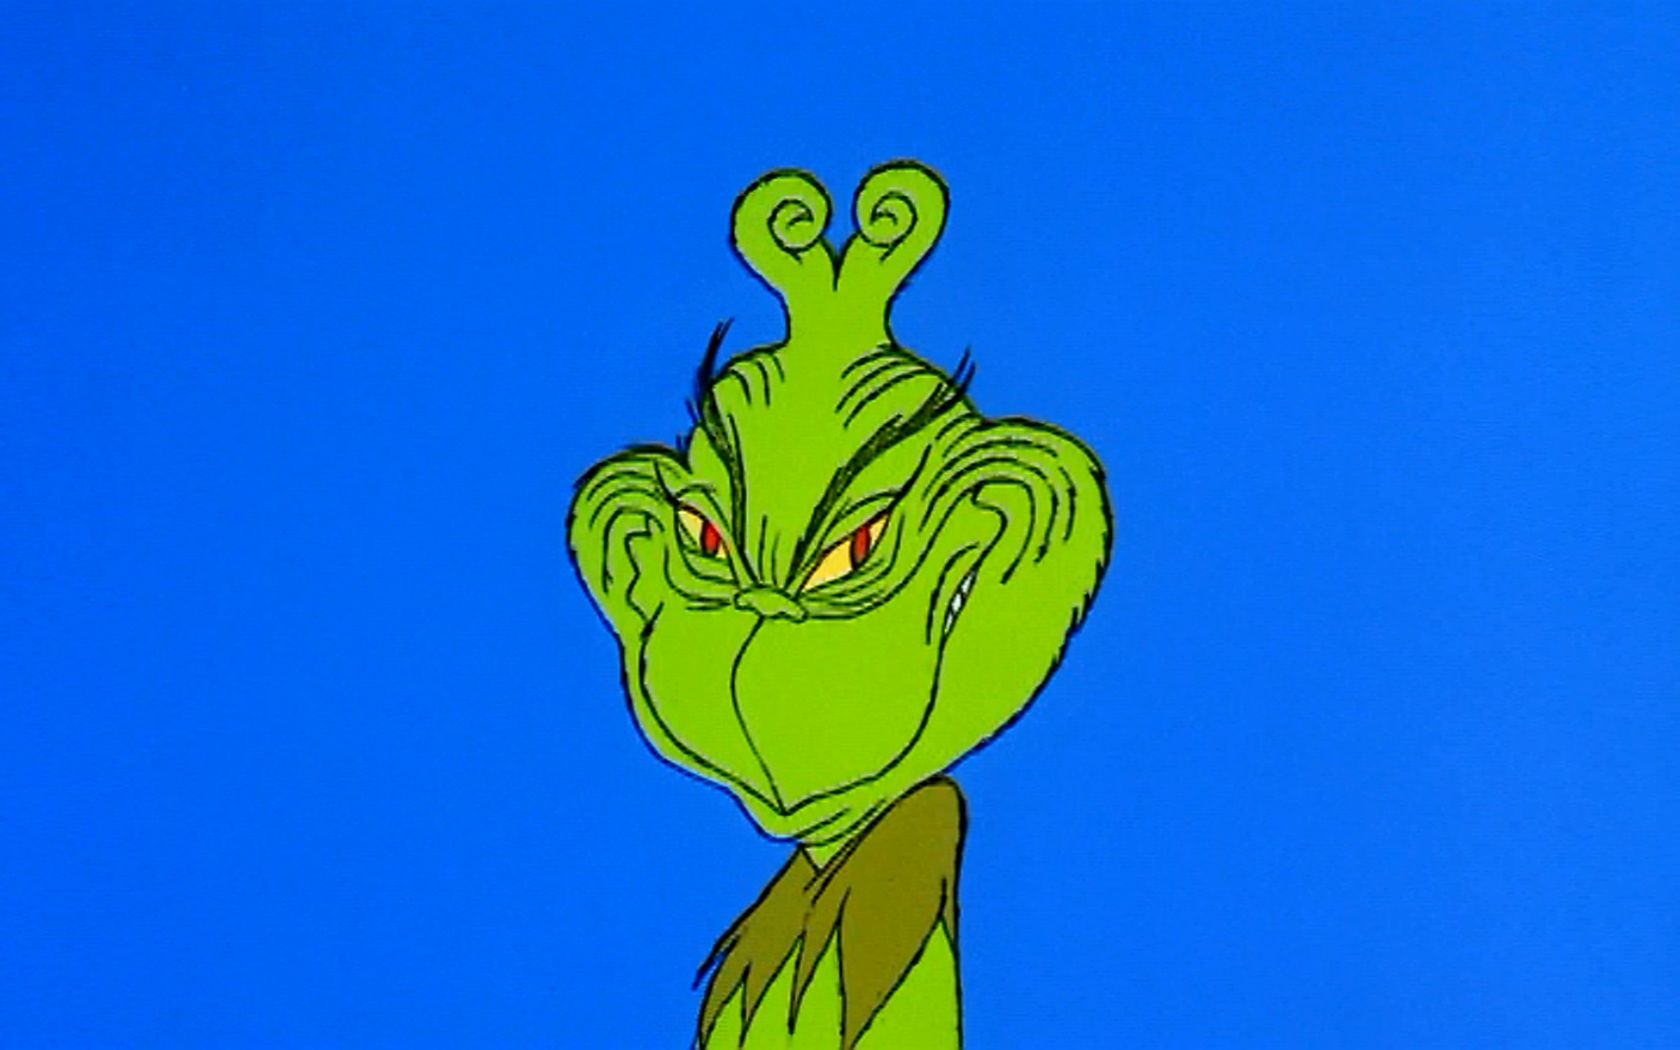 How The Grinch Stole Christmas Ymmv Tv Tropes The Grinch